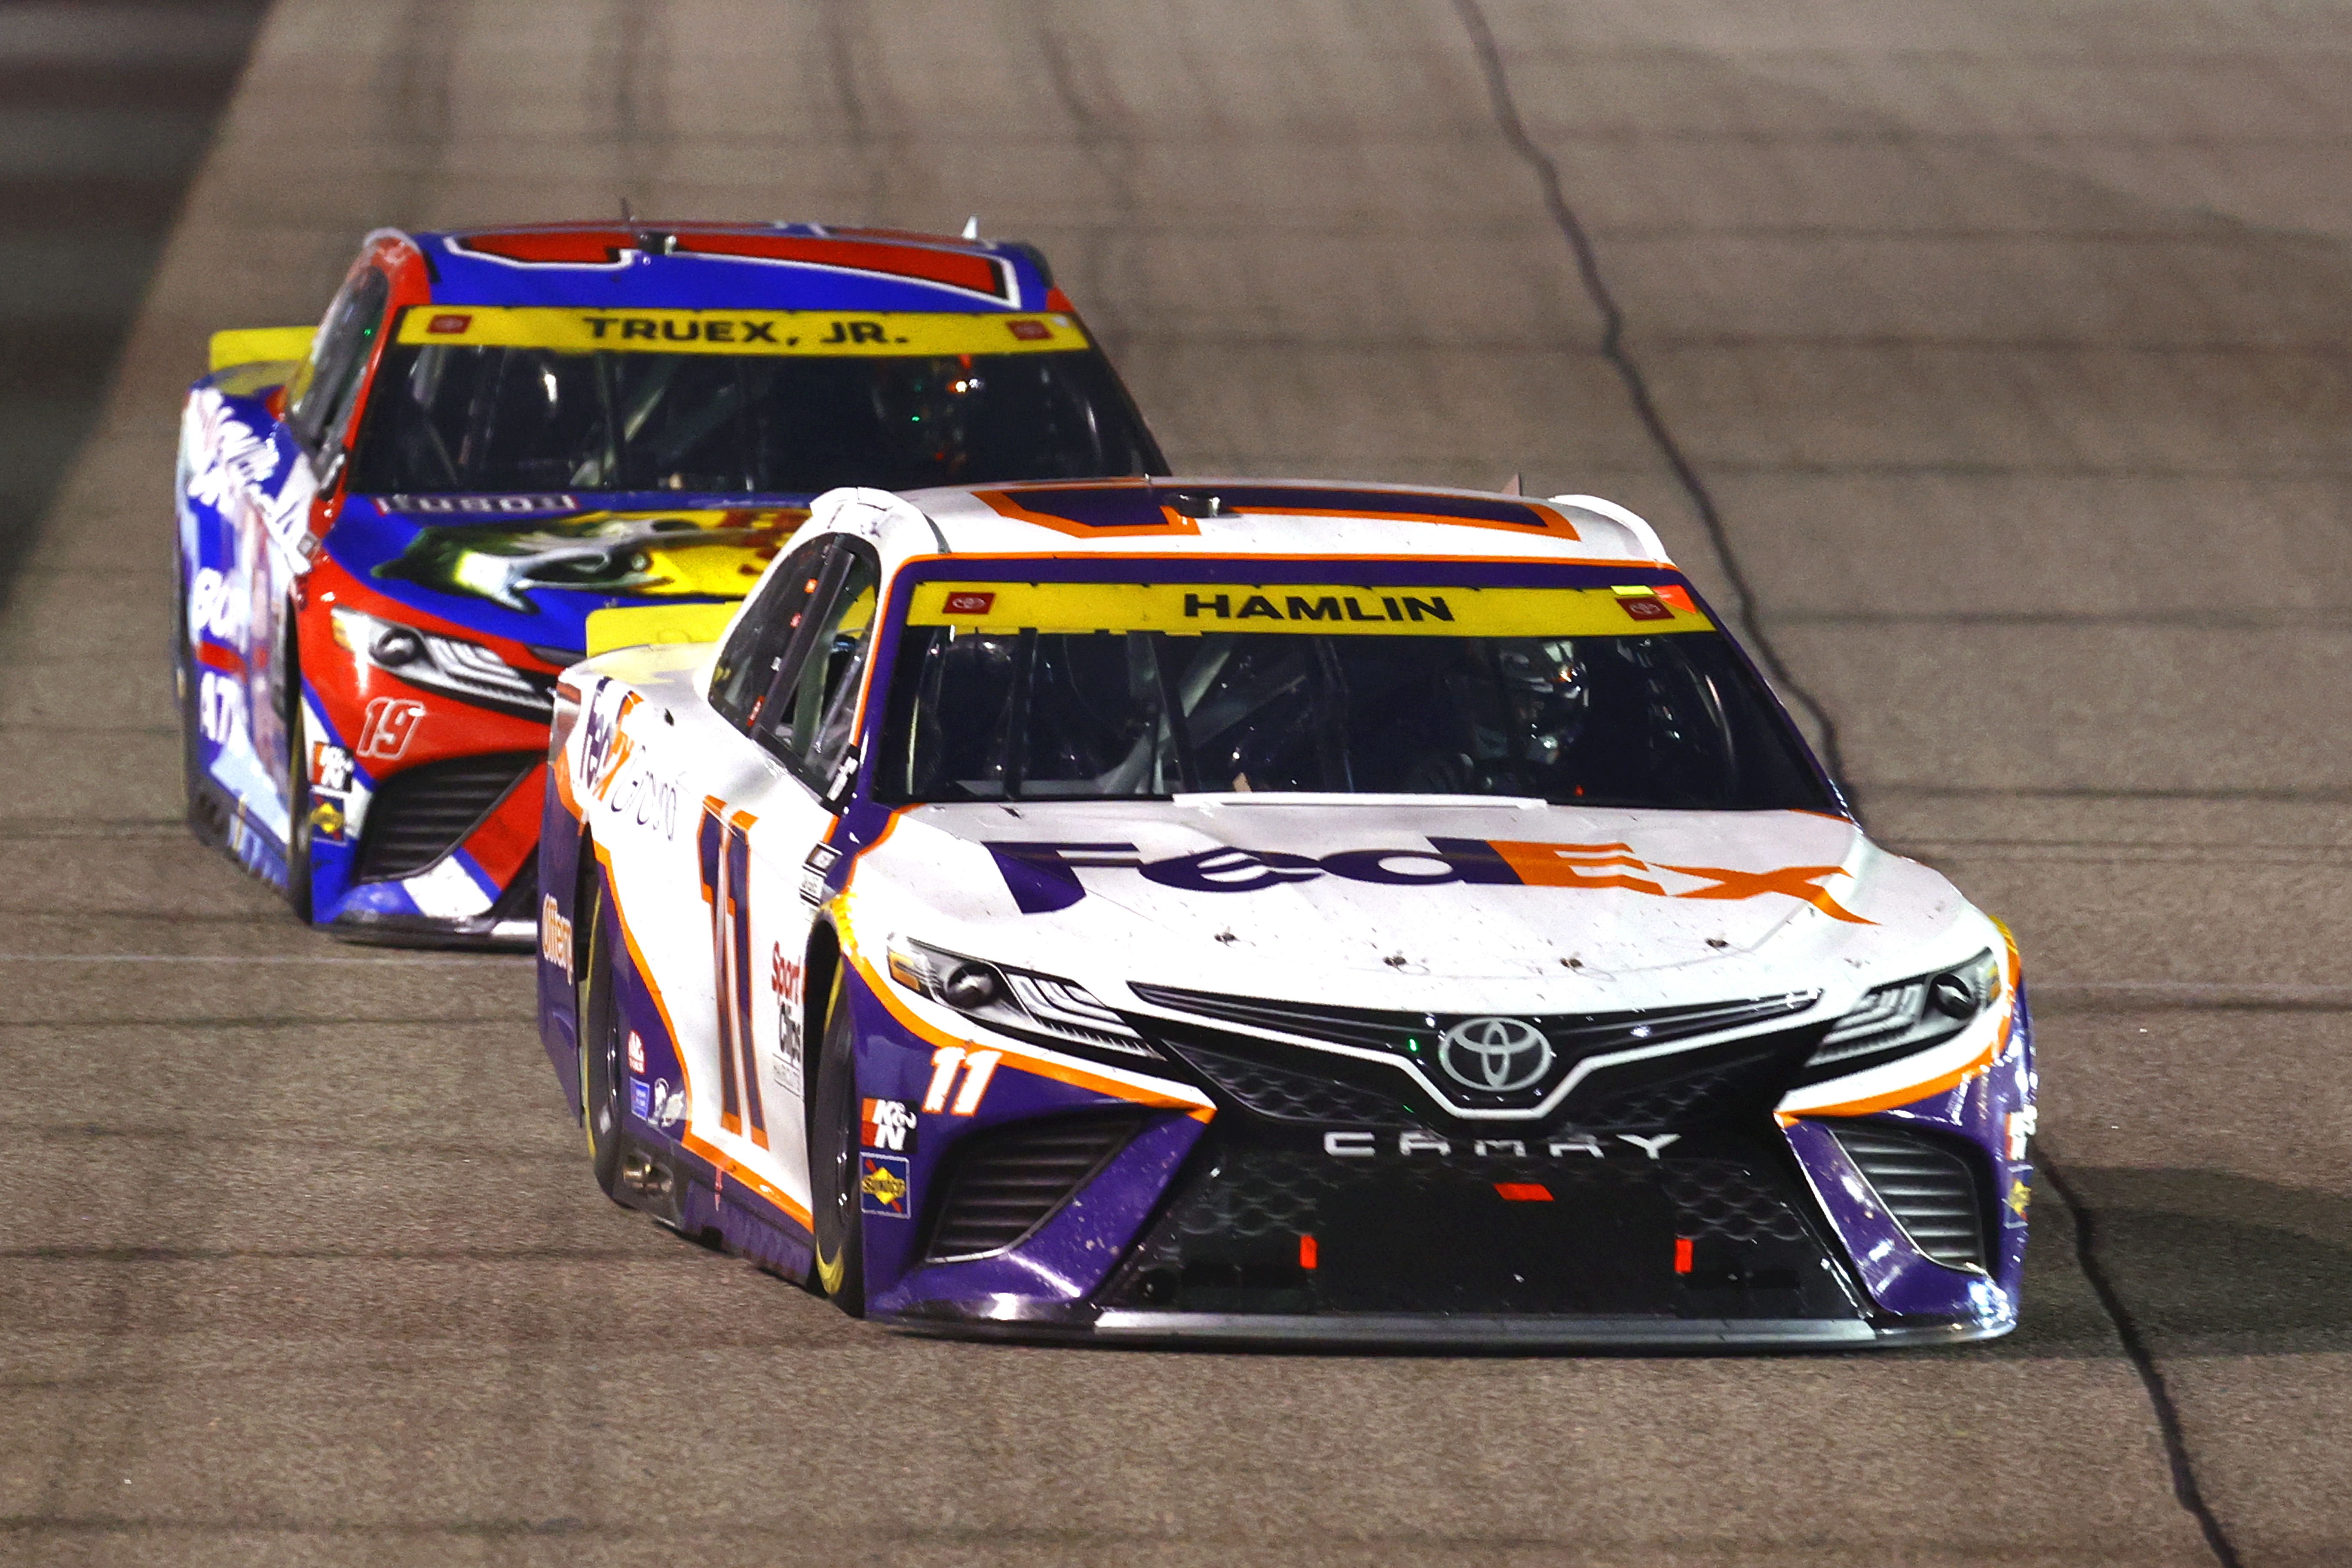 Denny Hamlin, driver of the #11 FedEx Ground Toyota, and Martin Truex Jr., driver of the #19 Bass Pro Shops Red White Blue Toyota, race during the NASCAR Cup Series Federated Auto Parts 400 Salute to First Responders at Richmond Raceway on September 11, 2021 in Richmond, Virginia.